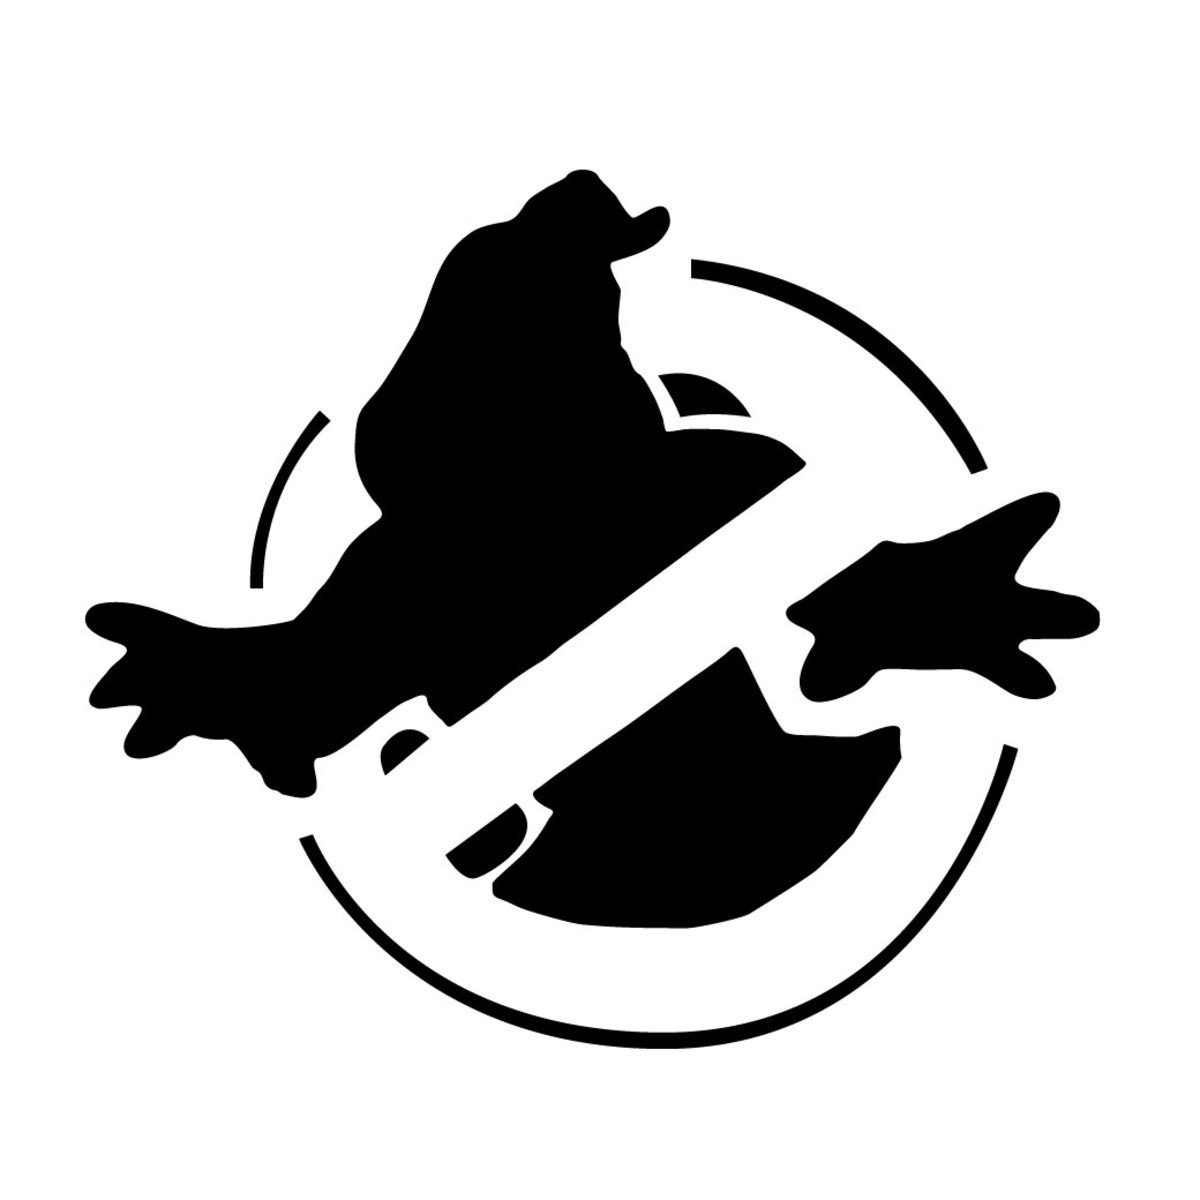 Print out this Ghostbuster's image for your Jack-o-Lantern.